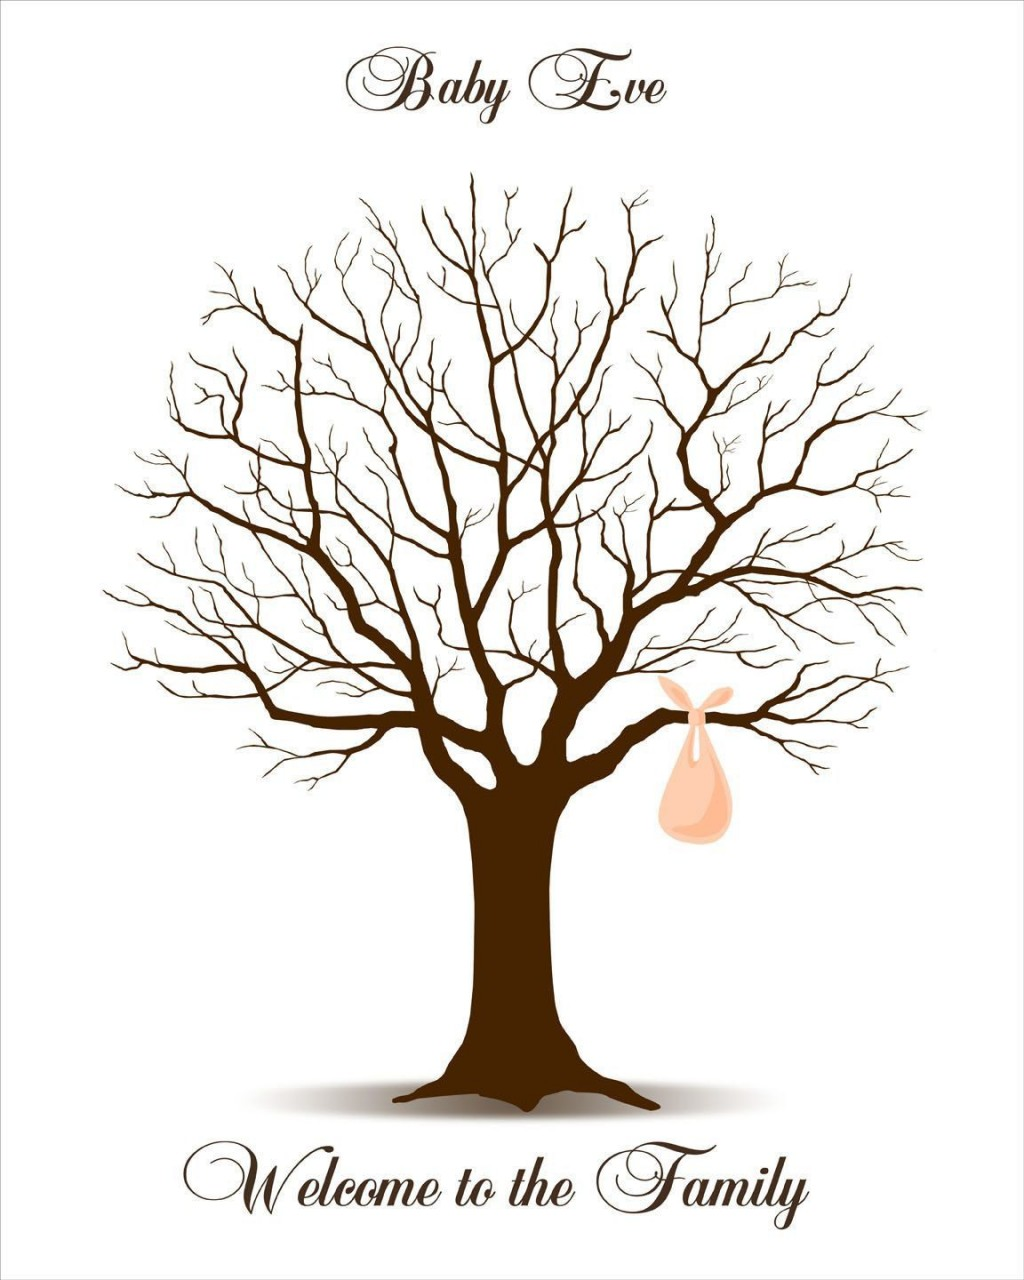 009 Rare Family Tree For Baby Book Template High Def  PrintableLarge